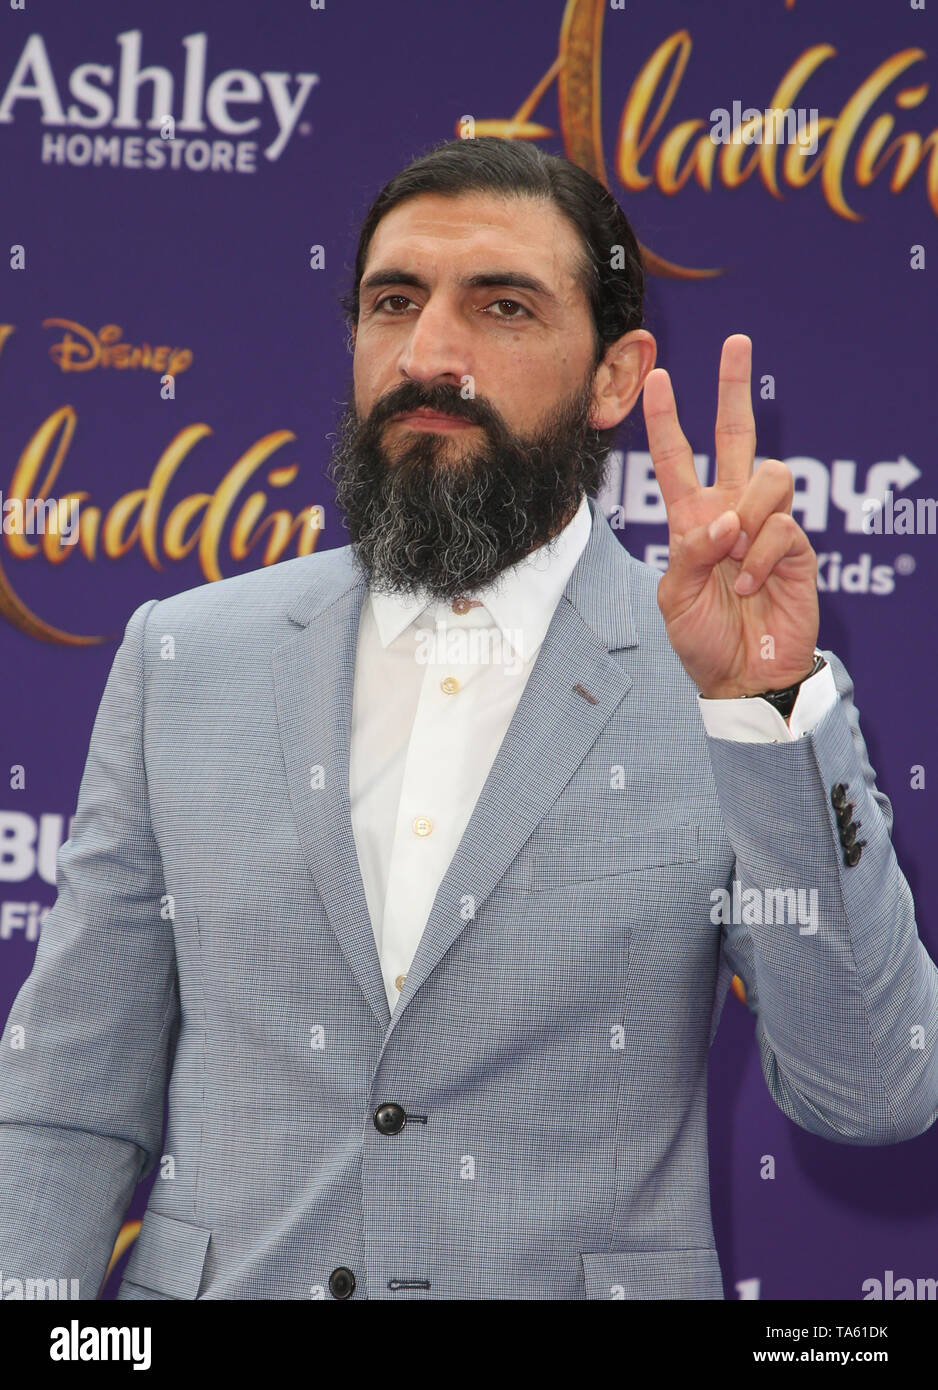 Hollywood, Ca. 21st May, 2019. Numan Acar, at the World Premiere of Disney's Aladdin at El Capitan theatre on May 21, 2019 in Hollywood., California on May 21, 2019. Credit: Faye Sadou/Media Punch/Alamy Live News - Stock Image